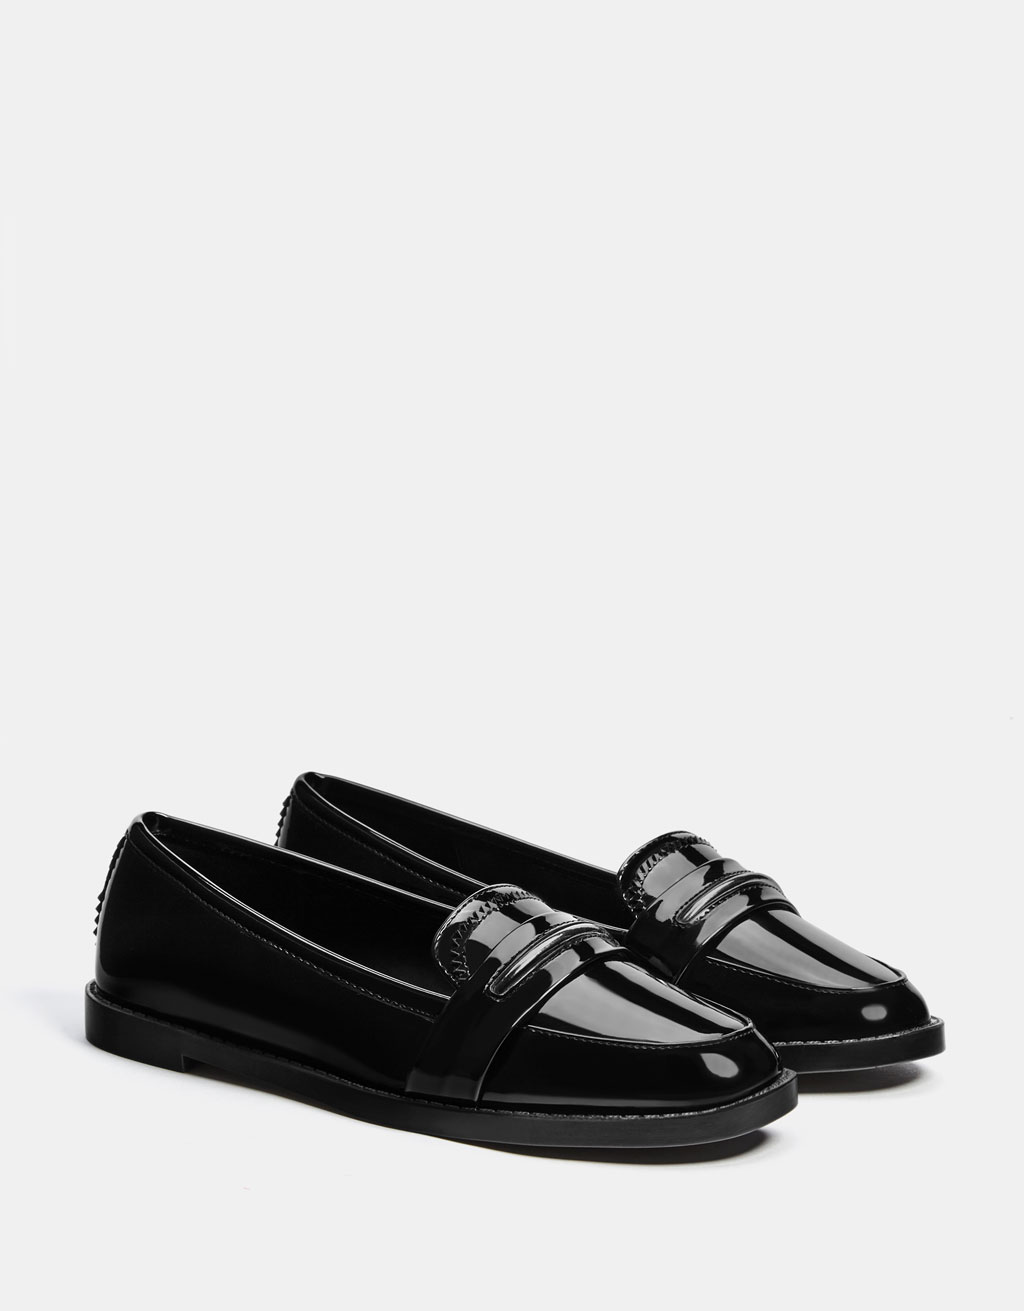 Black loafers with a faux patent finish